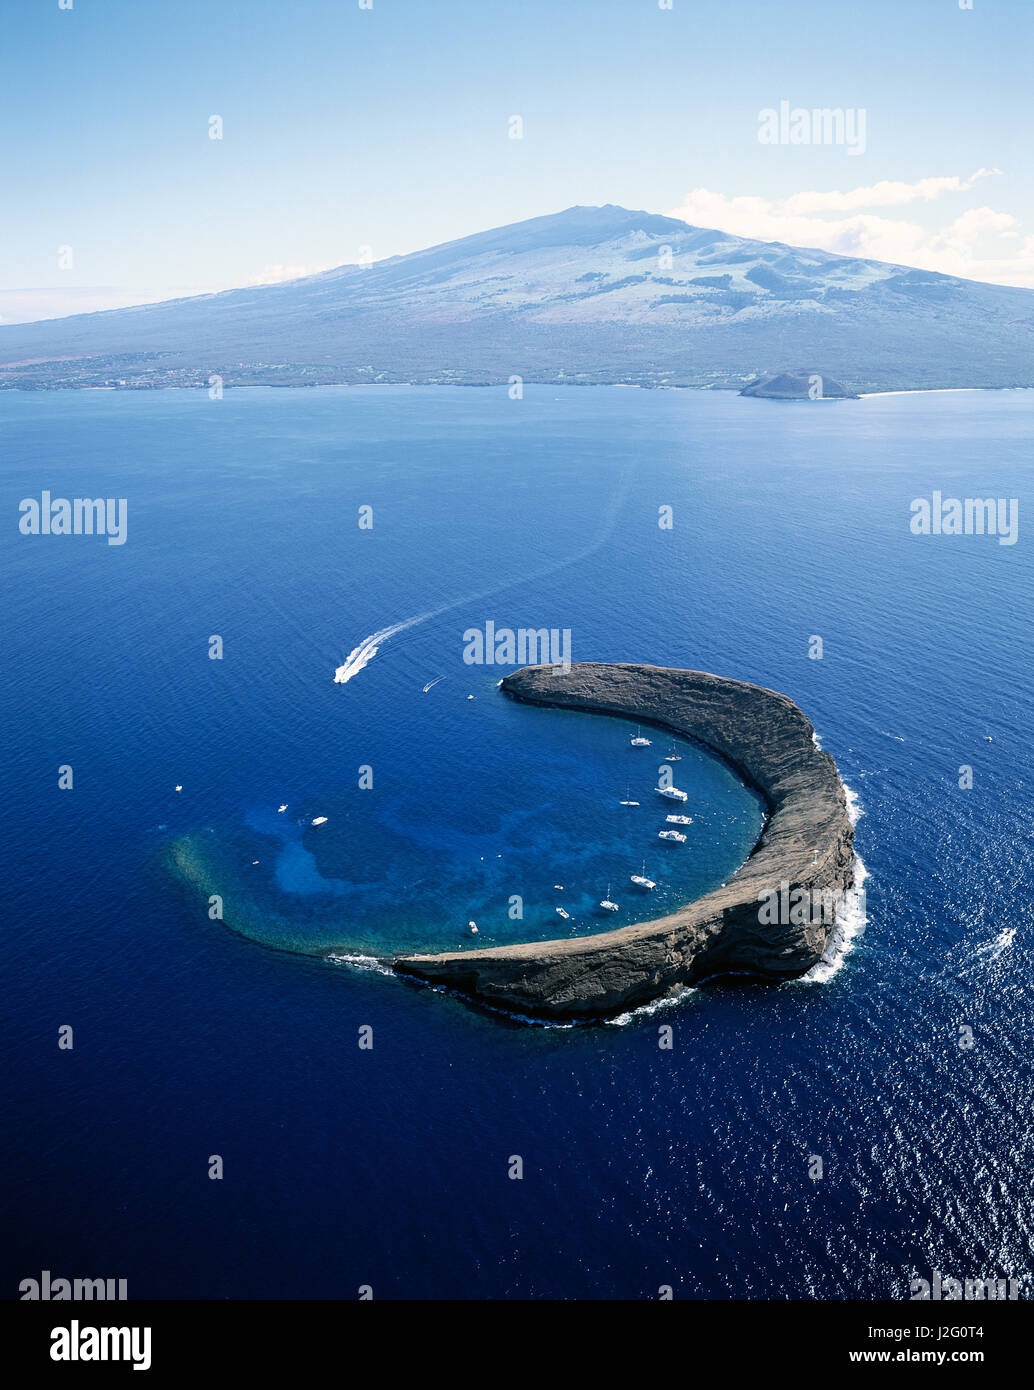 How Many Islands Are In Hawaii In All